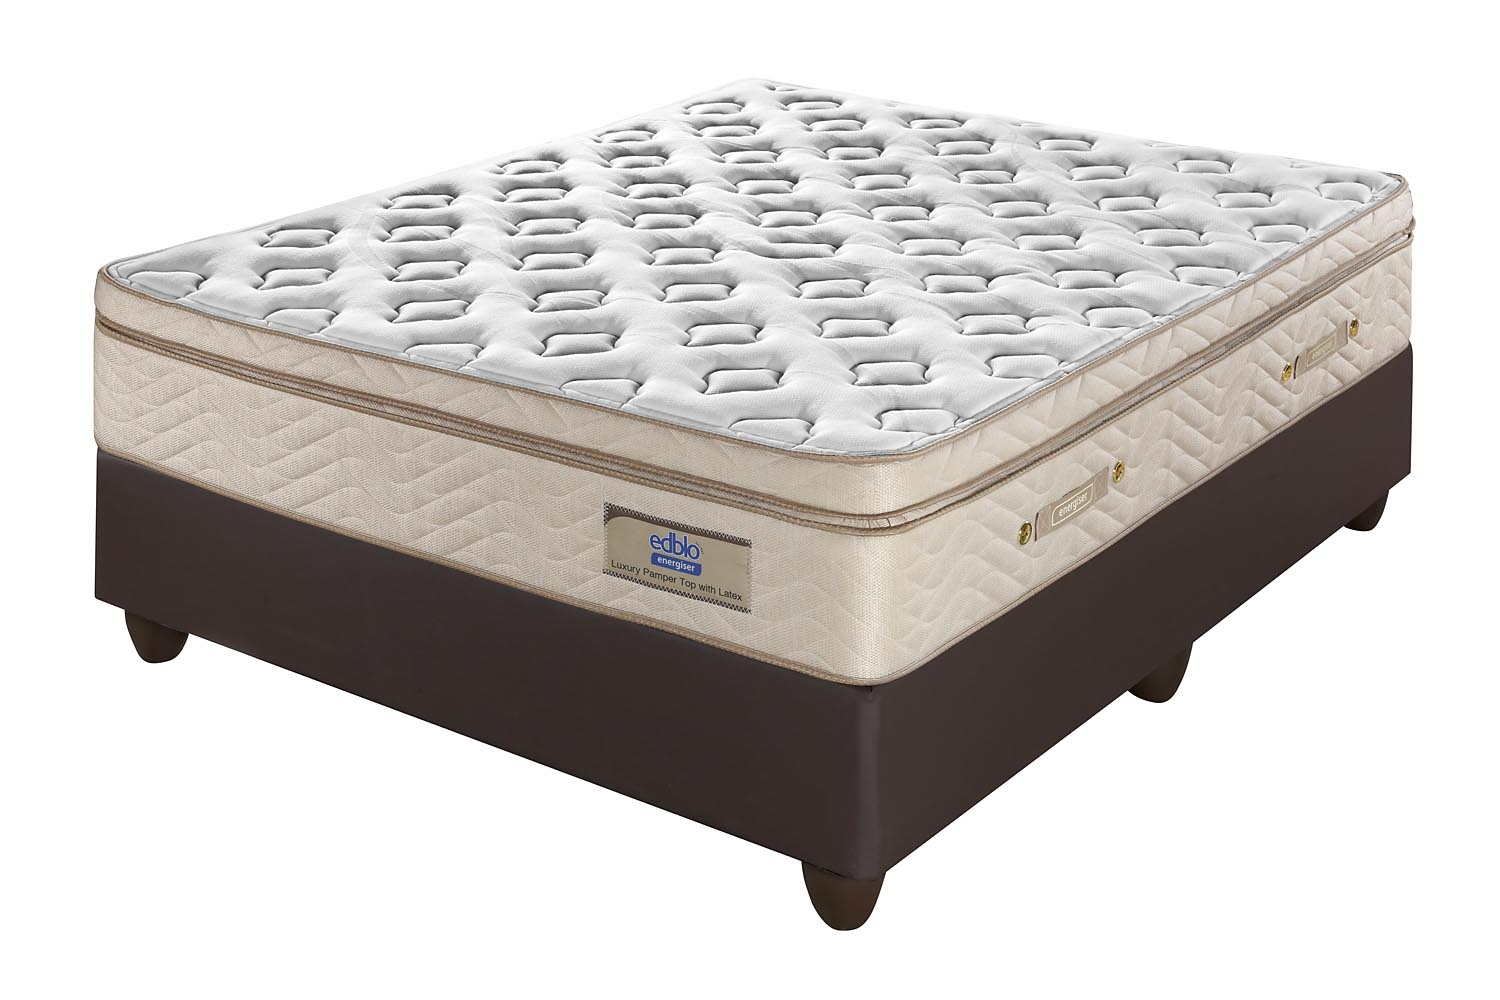 Edblo energiser luxury pamper top bed beds and more Bed and mattress for sale